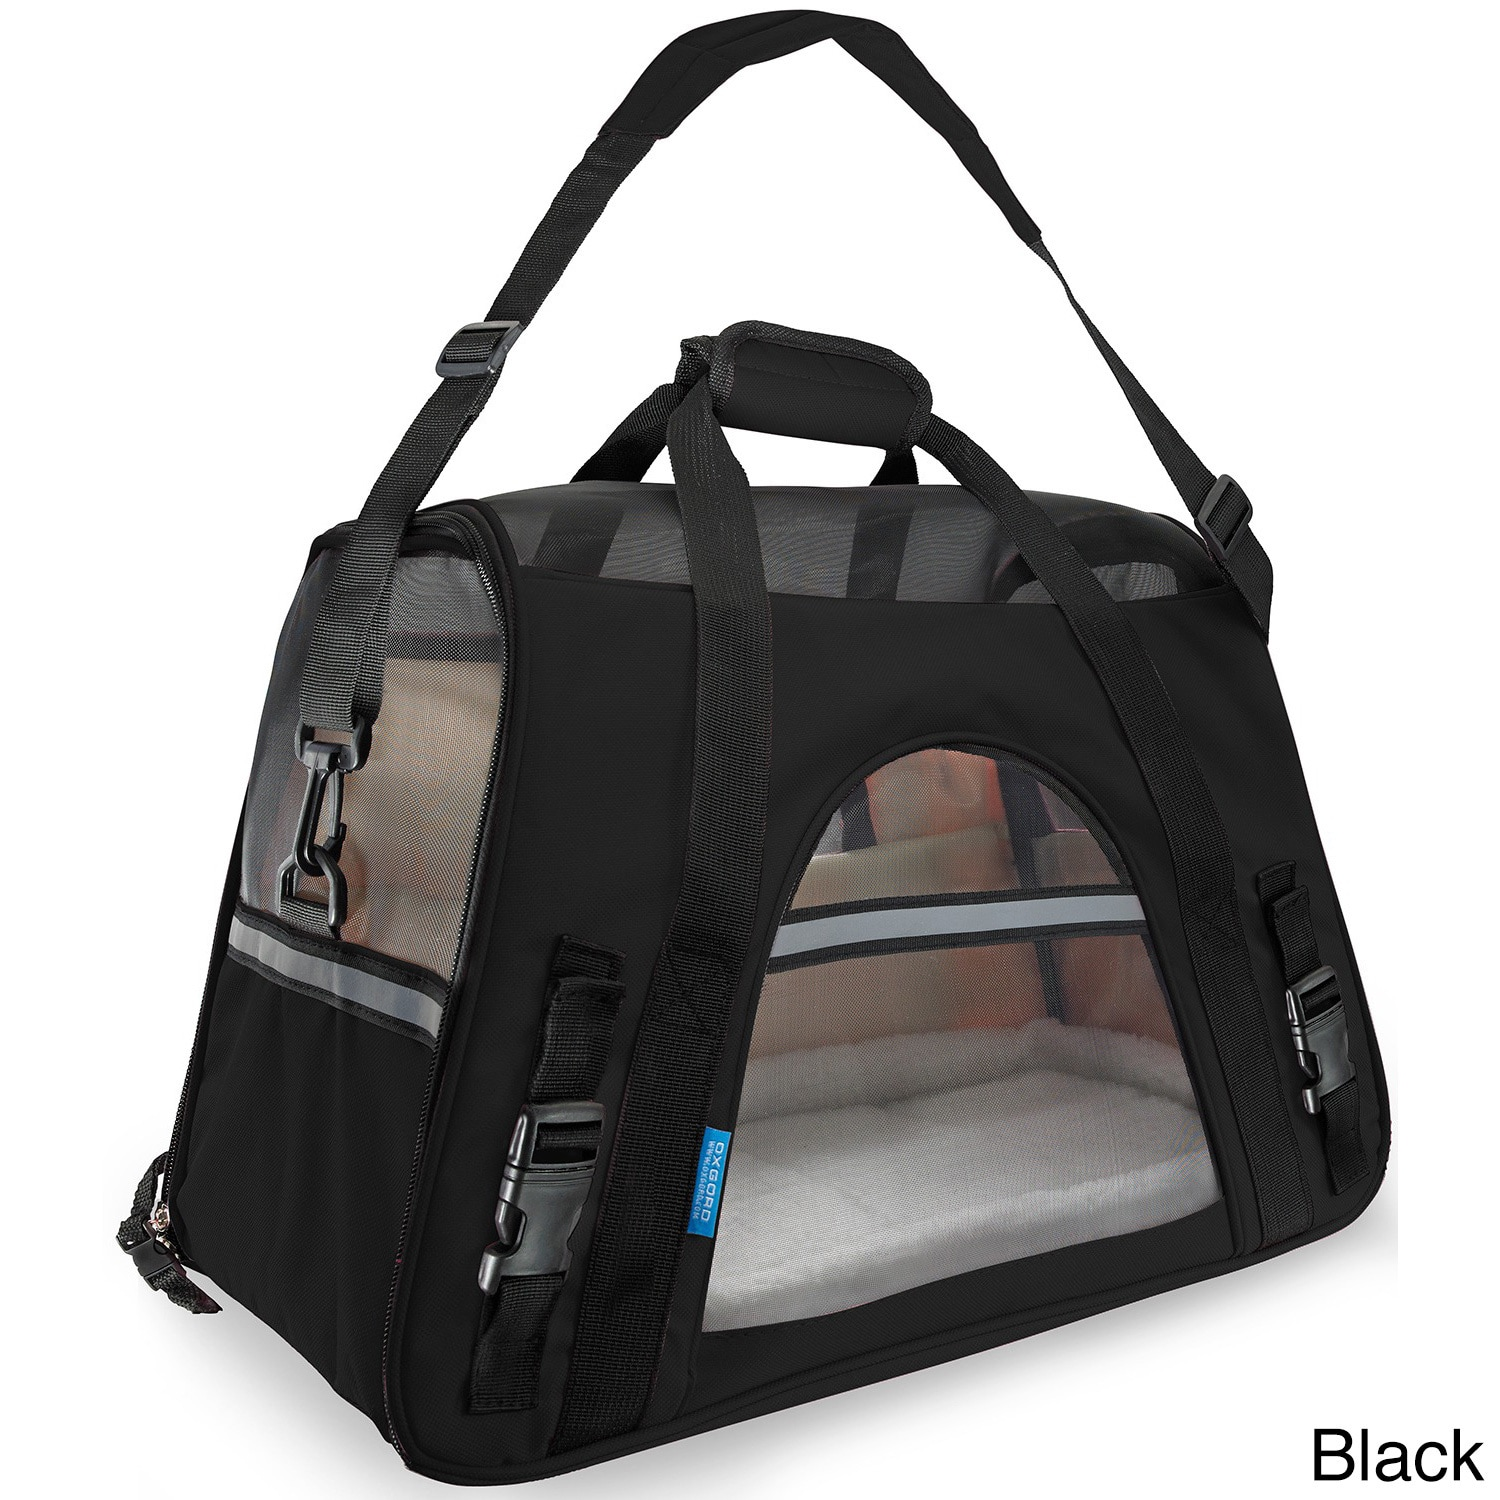 OxGord Large Softsided Comfort Travel Tote Pet Carrier